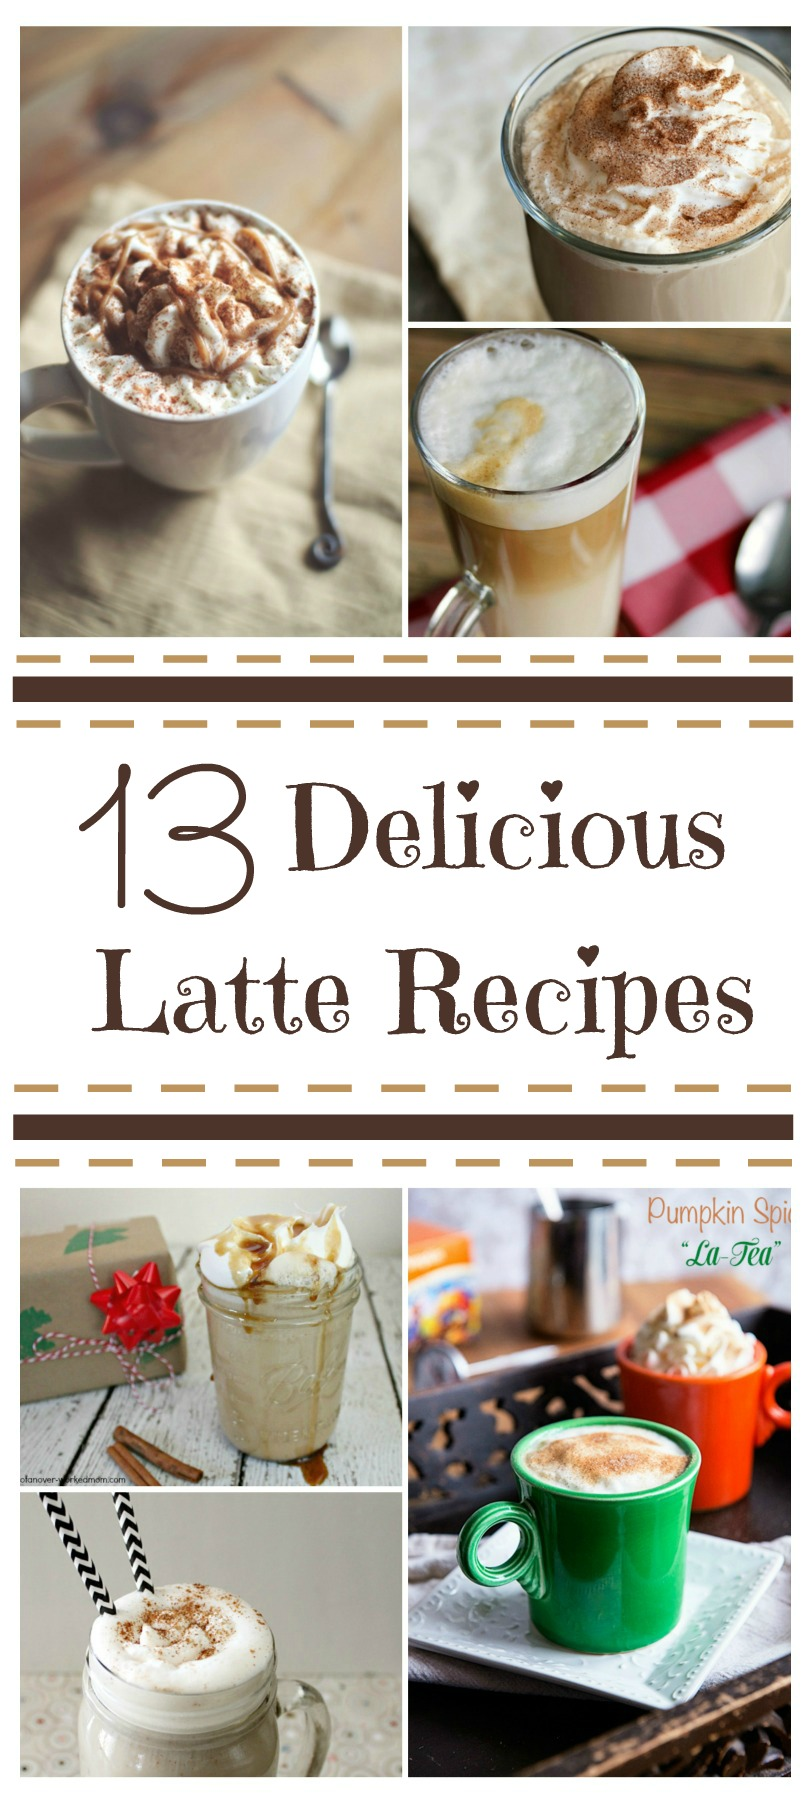 Looking for some awesome latte & Starbucks copycat recipes? Check out these 13 delicious & budget friendly latte recipes here!